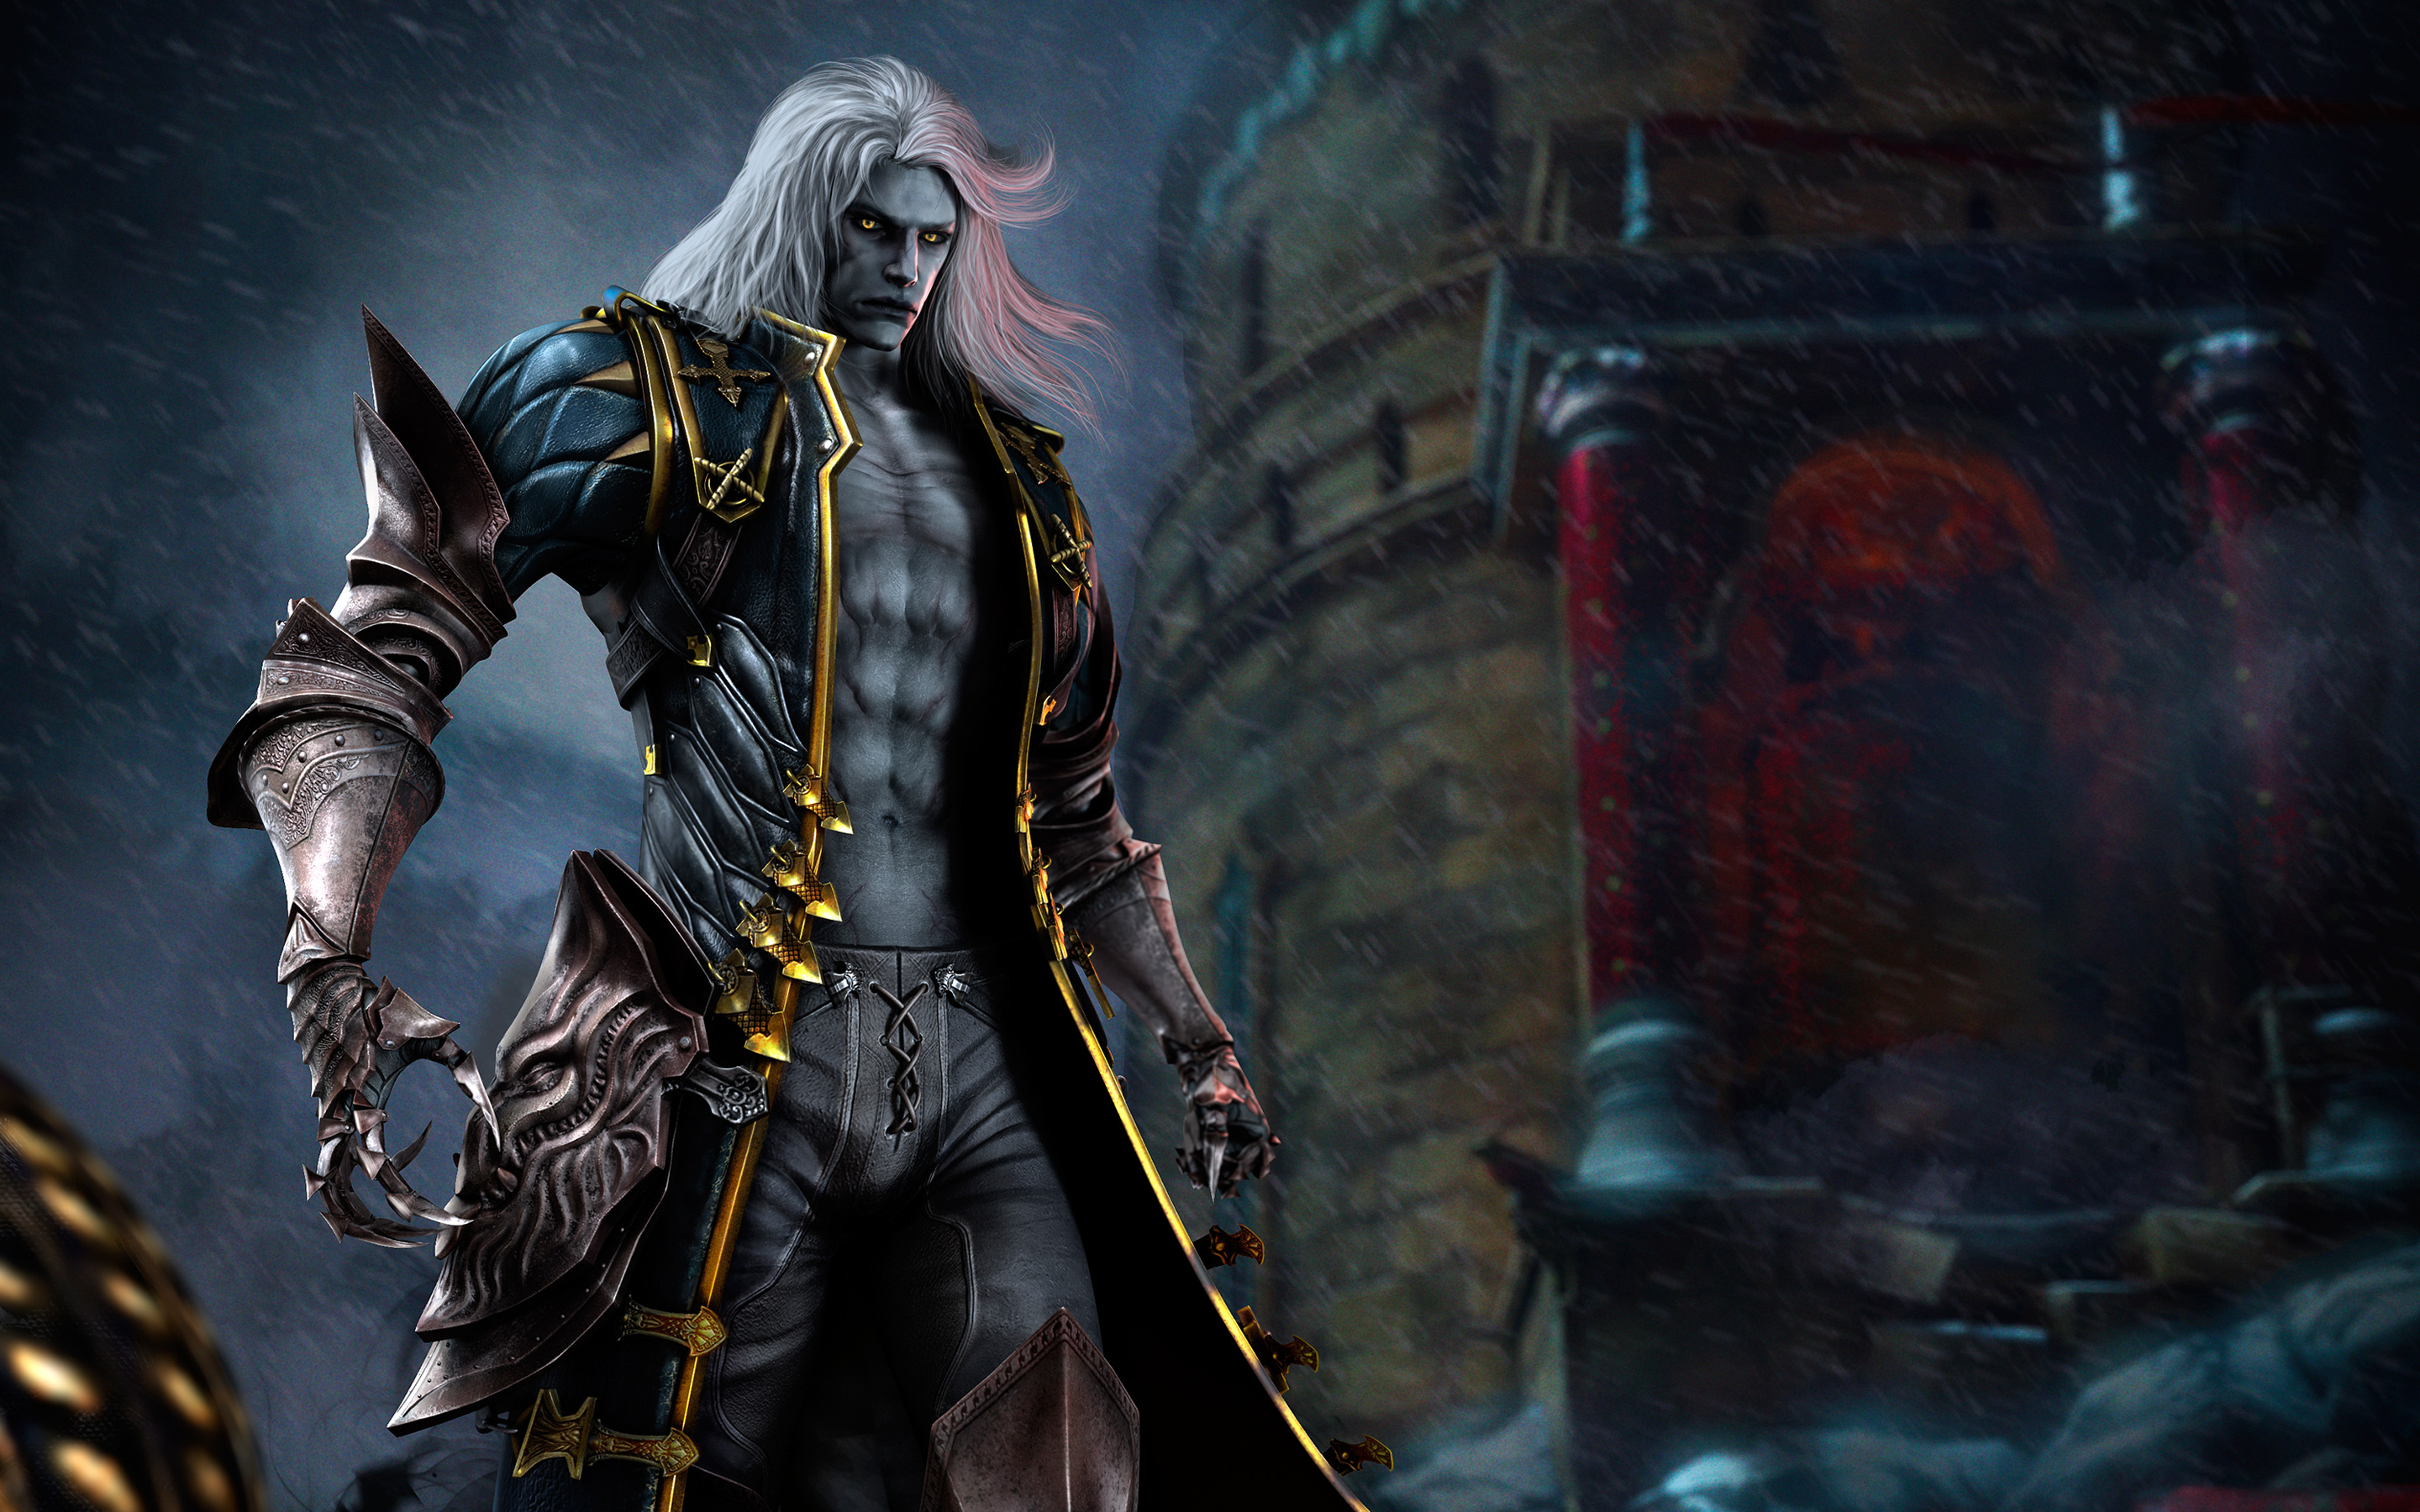 Alucard in Castlevania Lords of Shadow 2 521.77 Kb